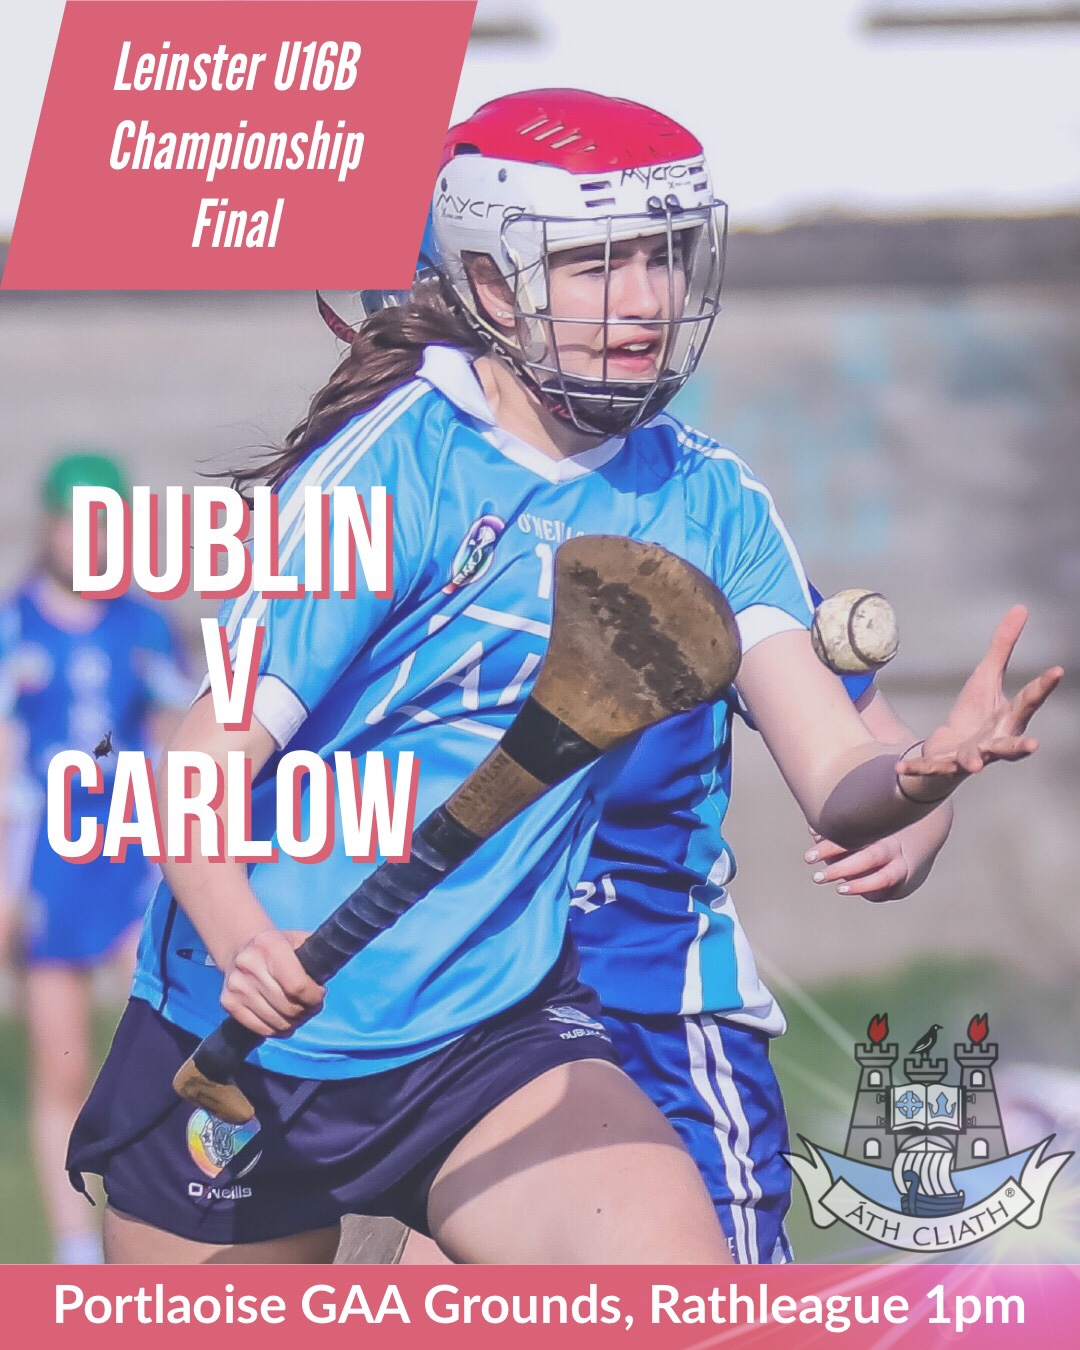 Dublin Player In Sky Blue Jersey And Red and White helmet from the U16 Camogie Panels catching a white Sliotar In Her Hand